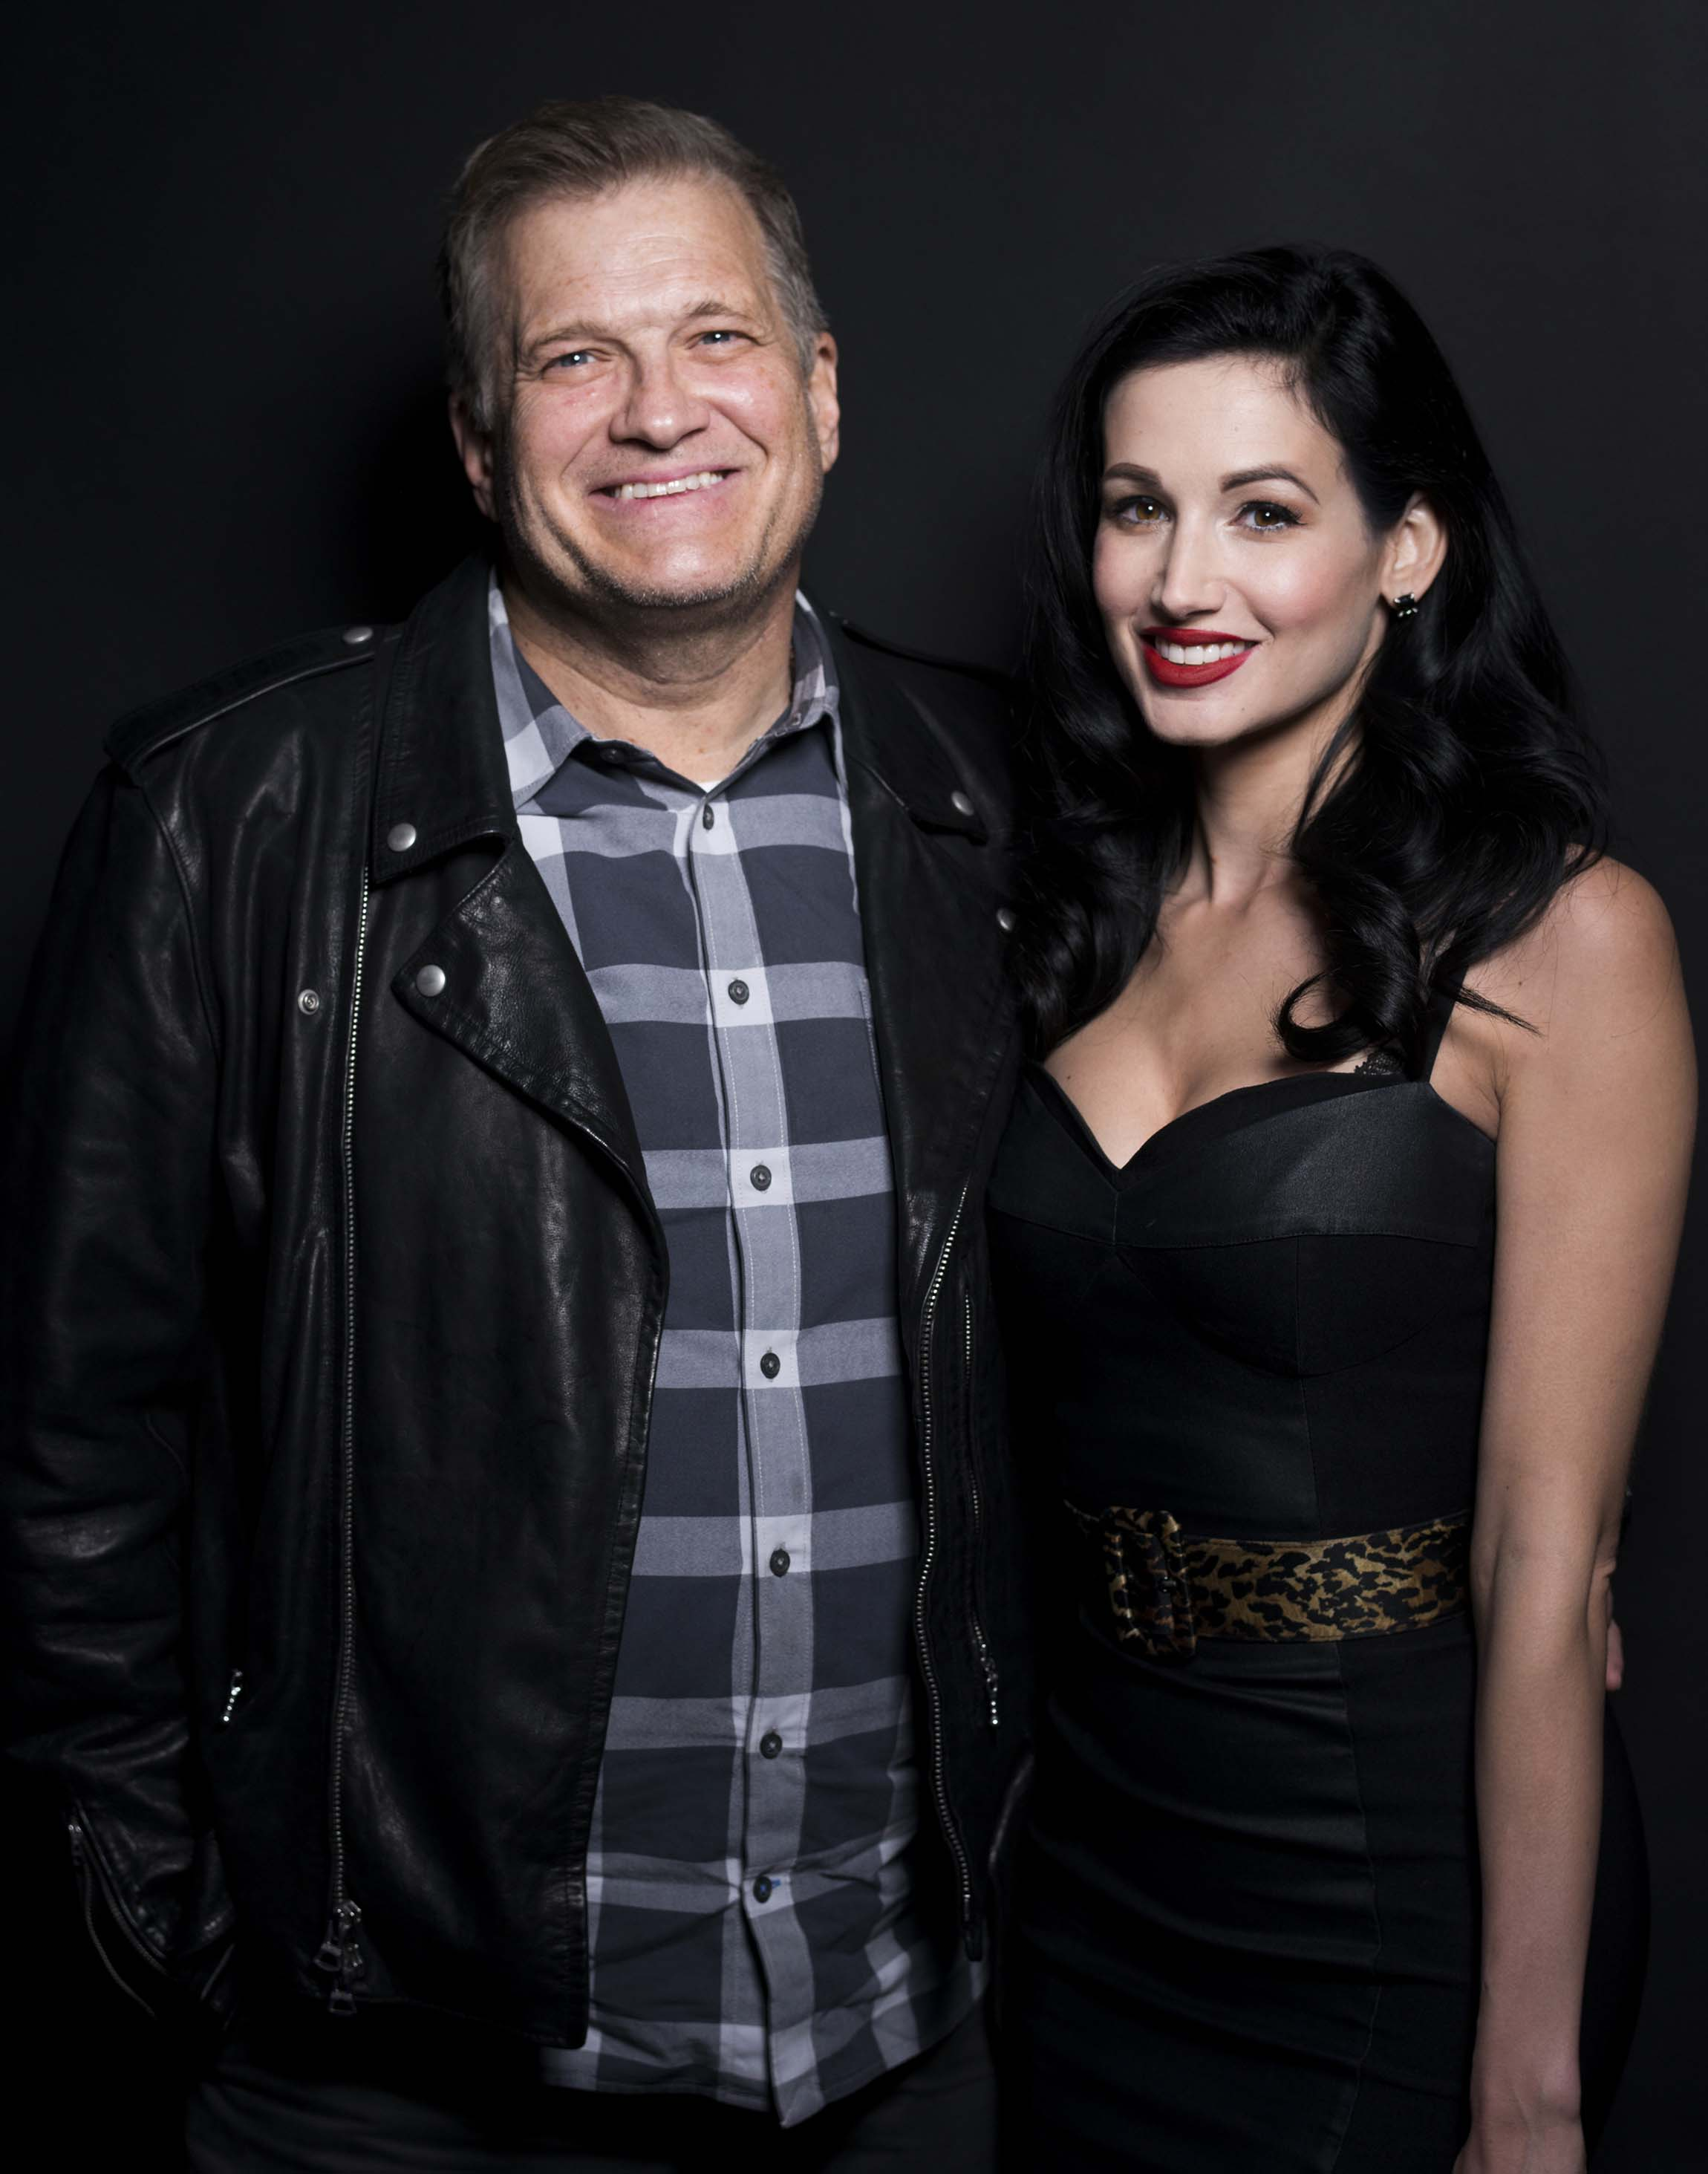 Drew Carey mourns death of ex-fiancée Amie Harwick